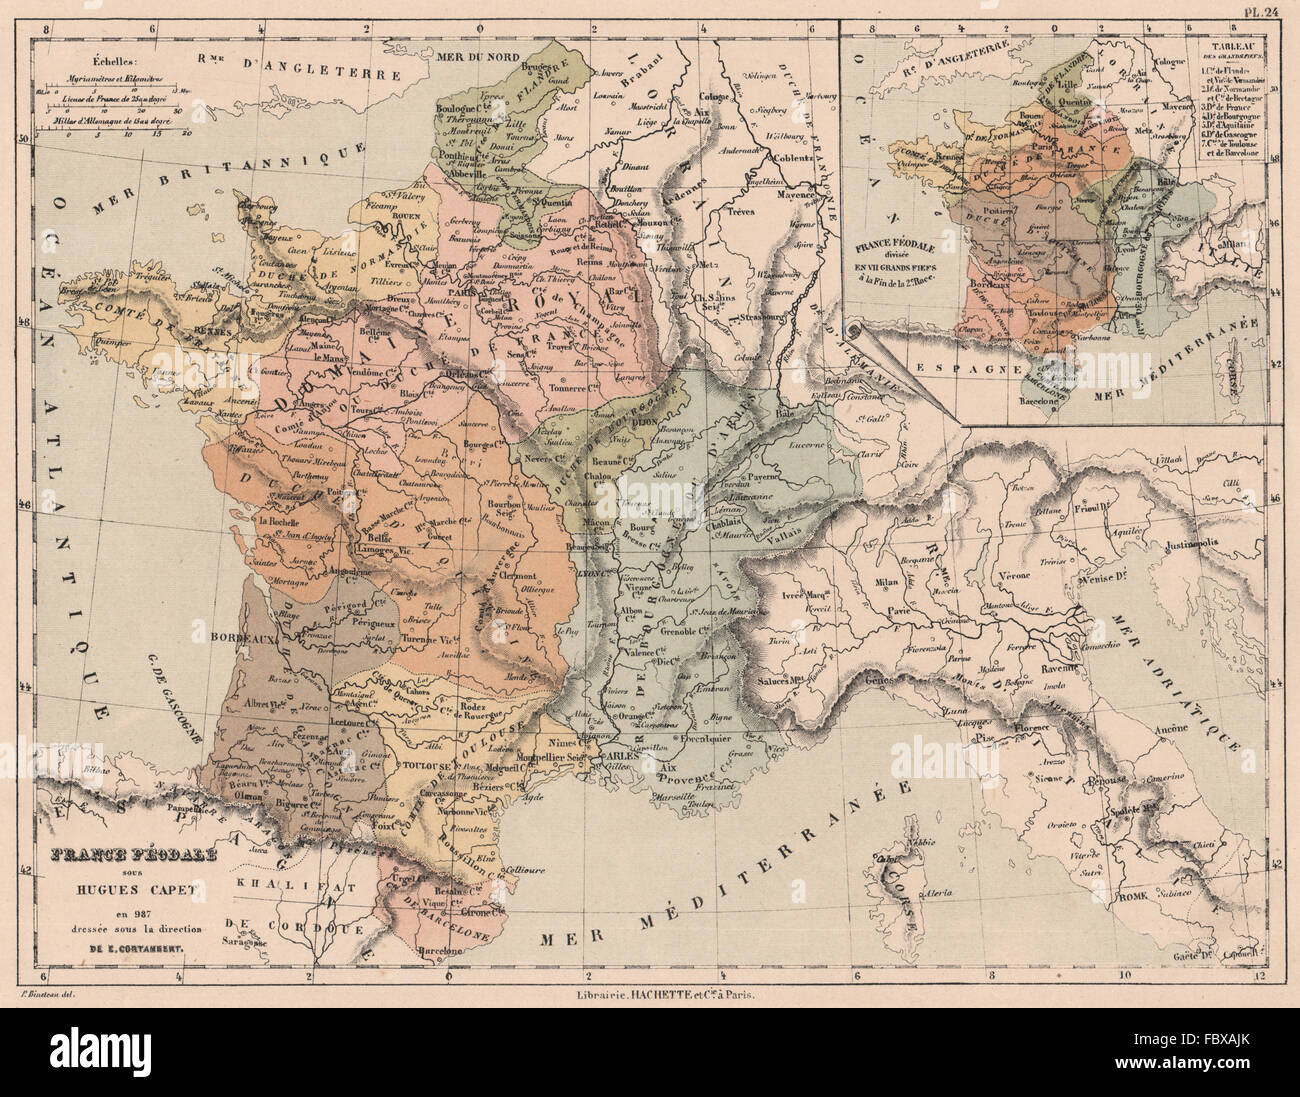 FRANCE IN 987. Feudal France under Hugh Capet. Divided into 7 fiefdoms, 1880 map - Stock Image